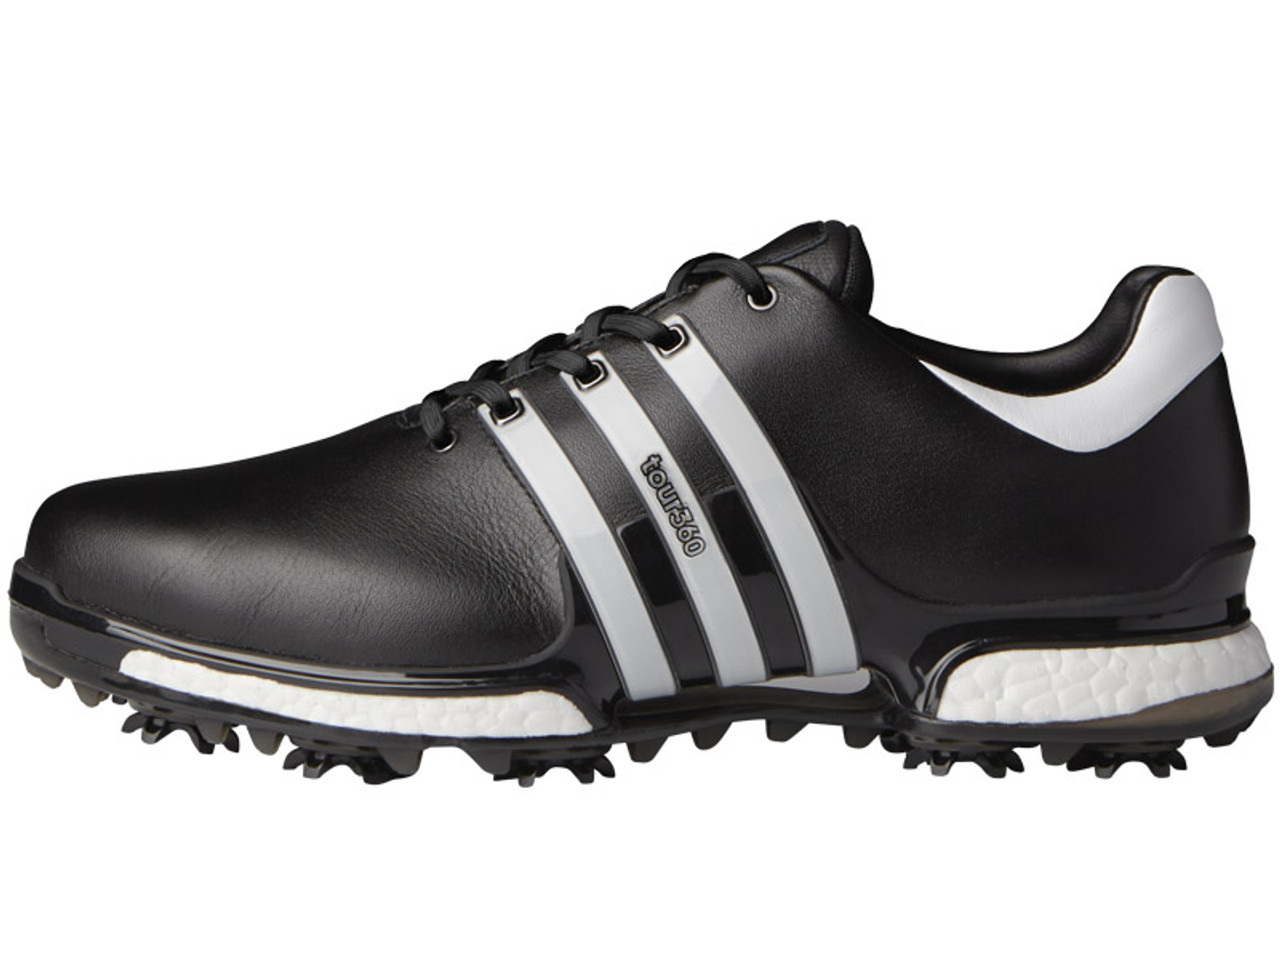 transportar Jugar juegos de computadora Masaje  Adidas Tour 360 Boost 2.0 Golf Shoes - Core Black/White - Mens | GolfBox